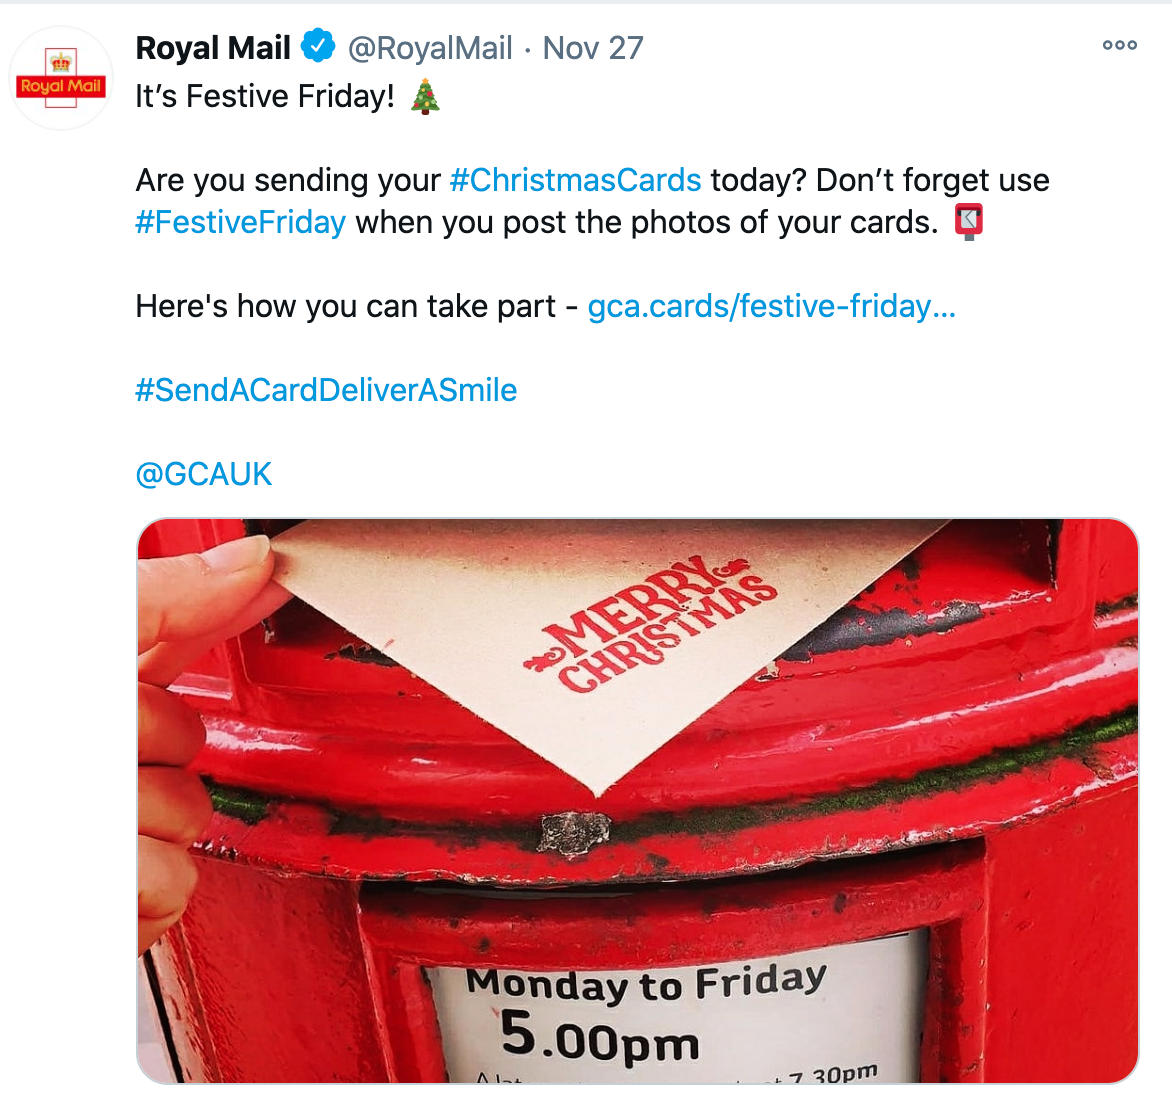 Above: Royal Mail took to social media to encourage Festive Friday Christmas card sending.